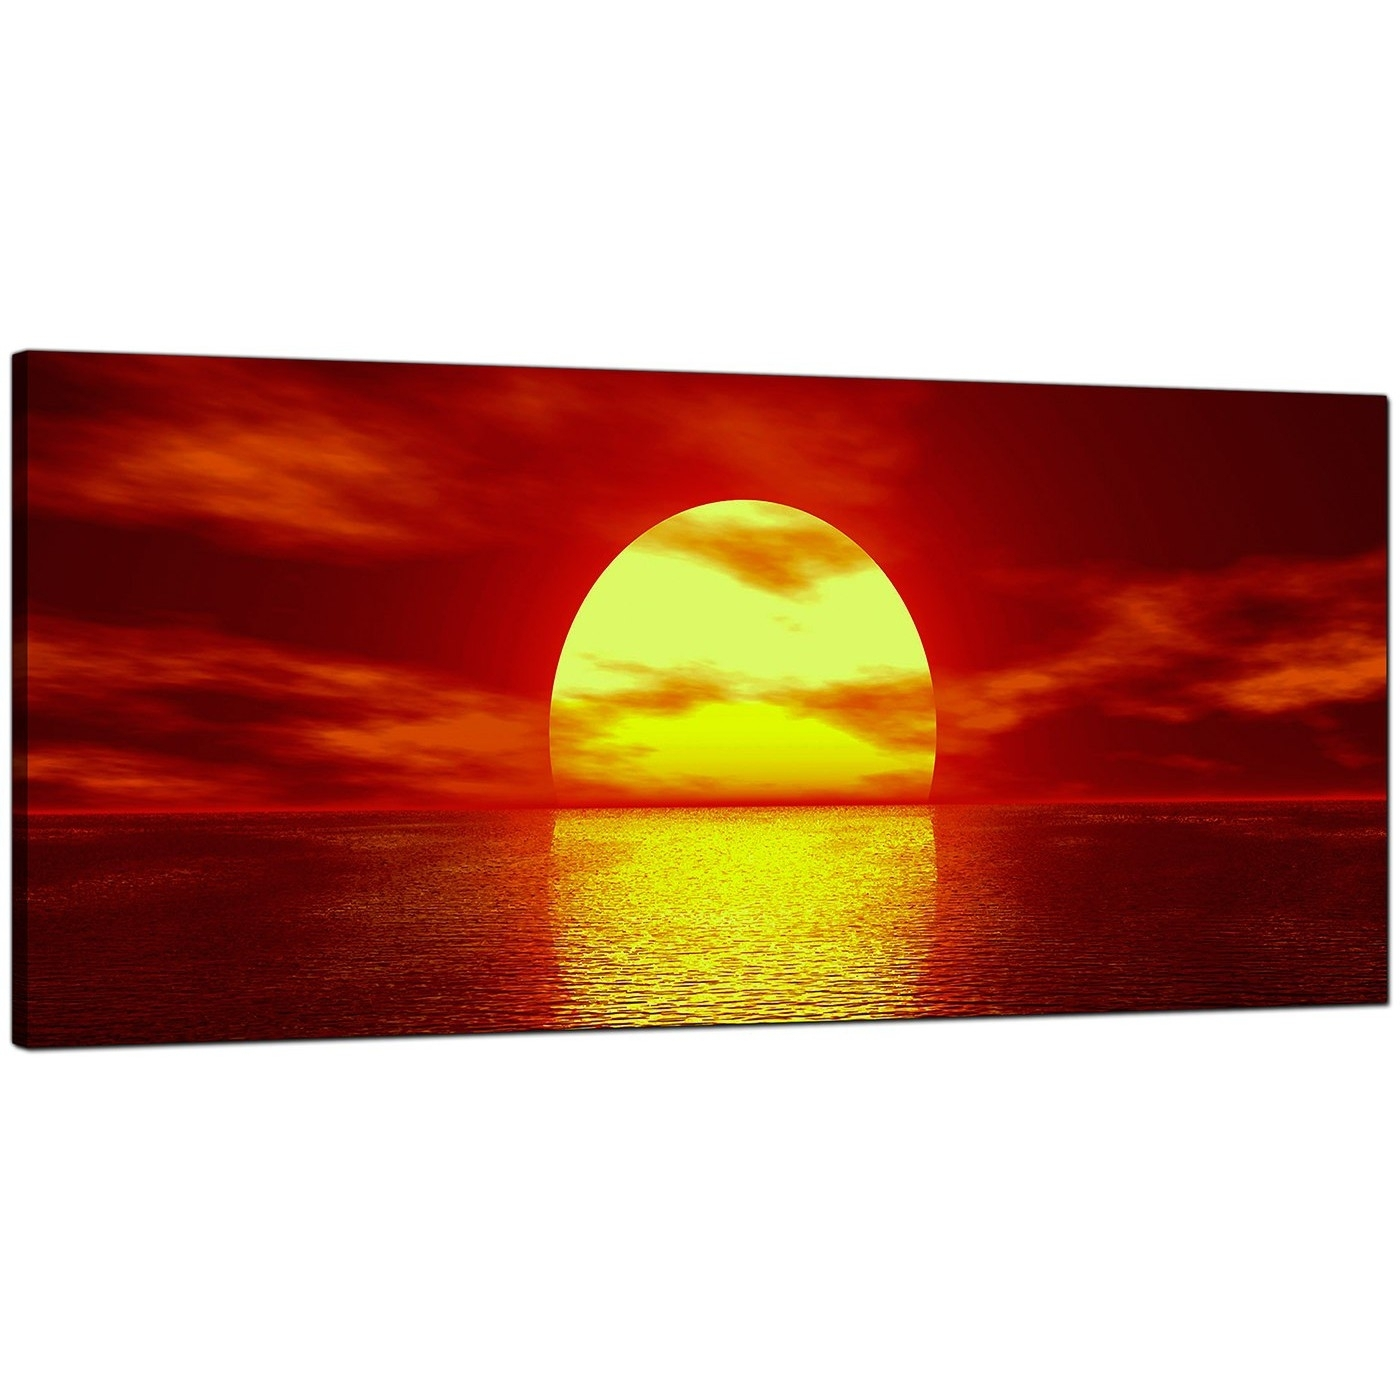 Modern Red Canvas Wall Art Of A Sea Sunset With Regard To Best And Newest Red Canvas Wall Art (View 10 of 15)